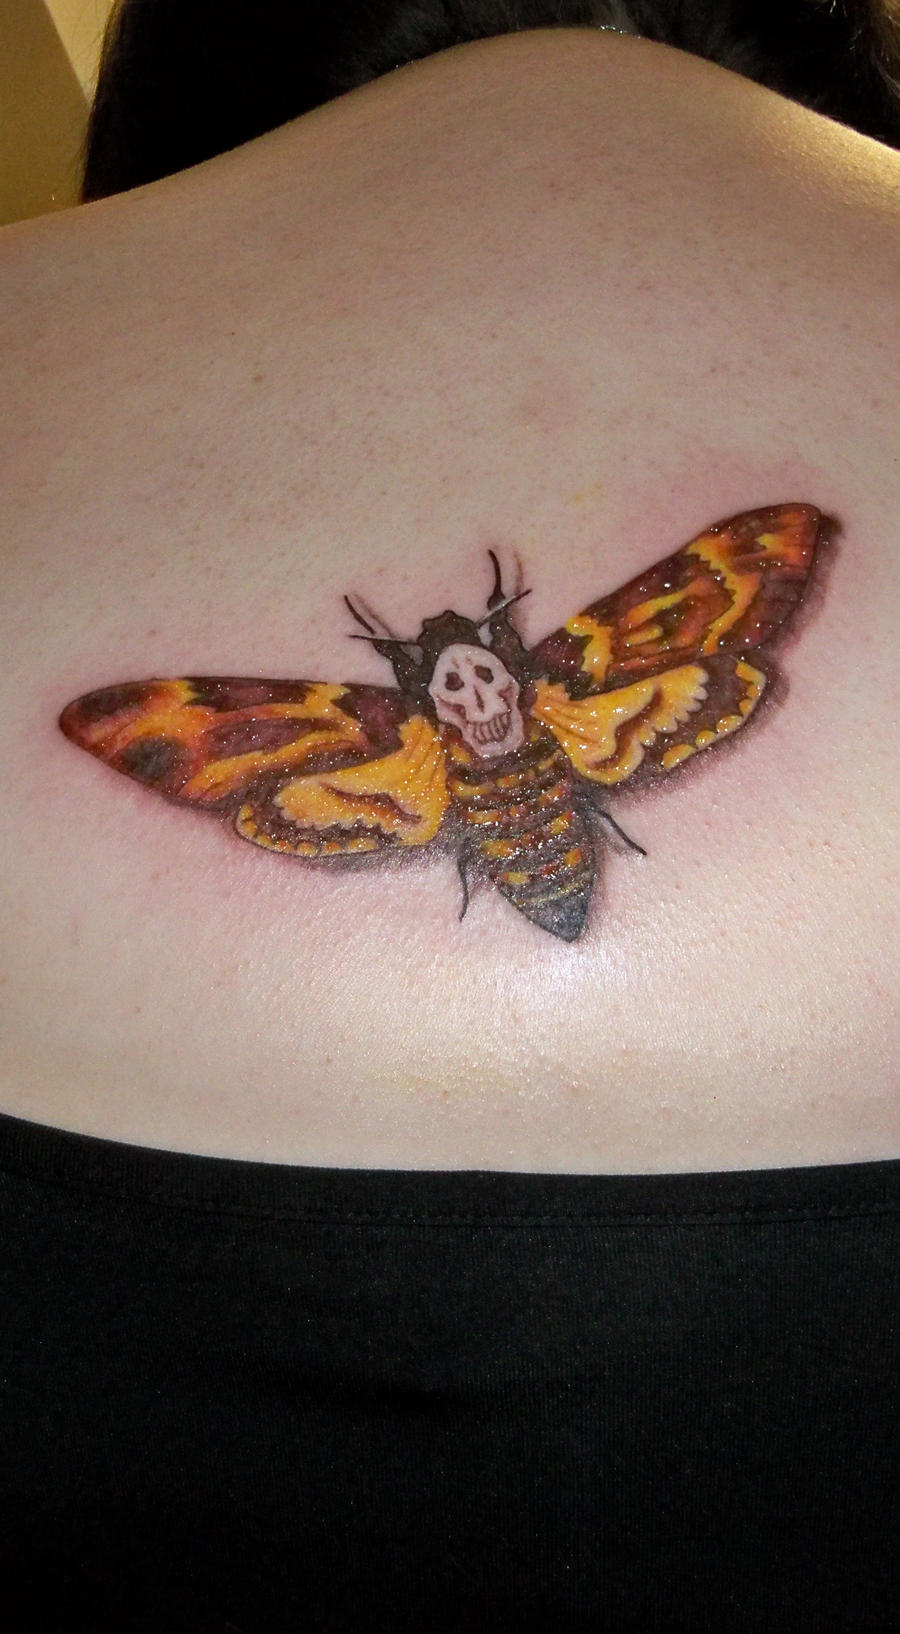 Silence of the Lambs Tattoo by TearInTheOcean on DeviantArt